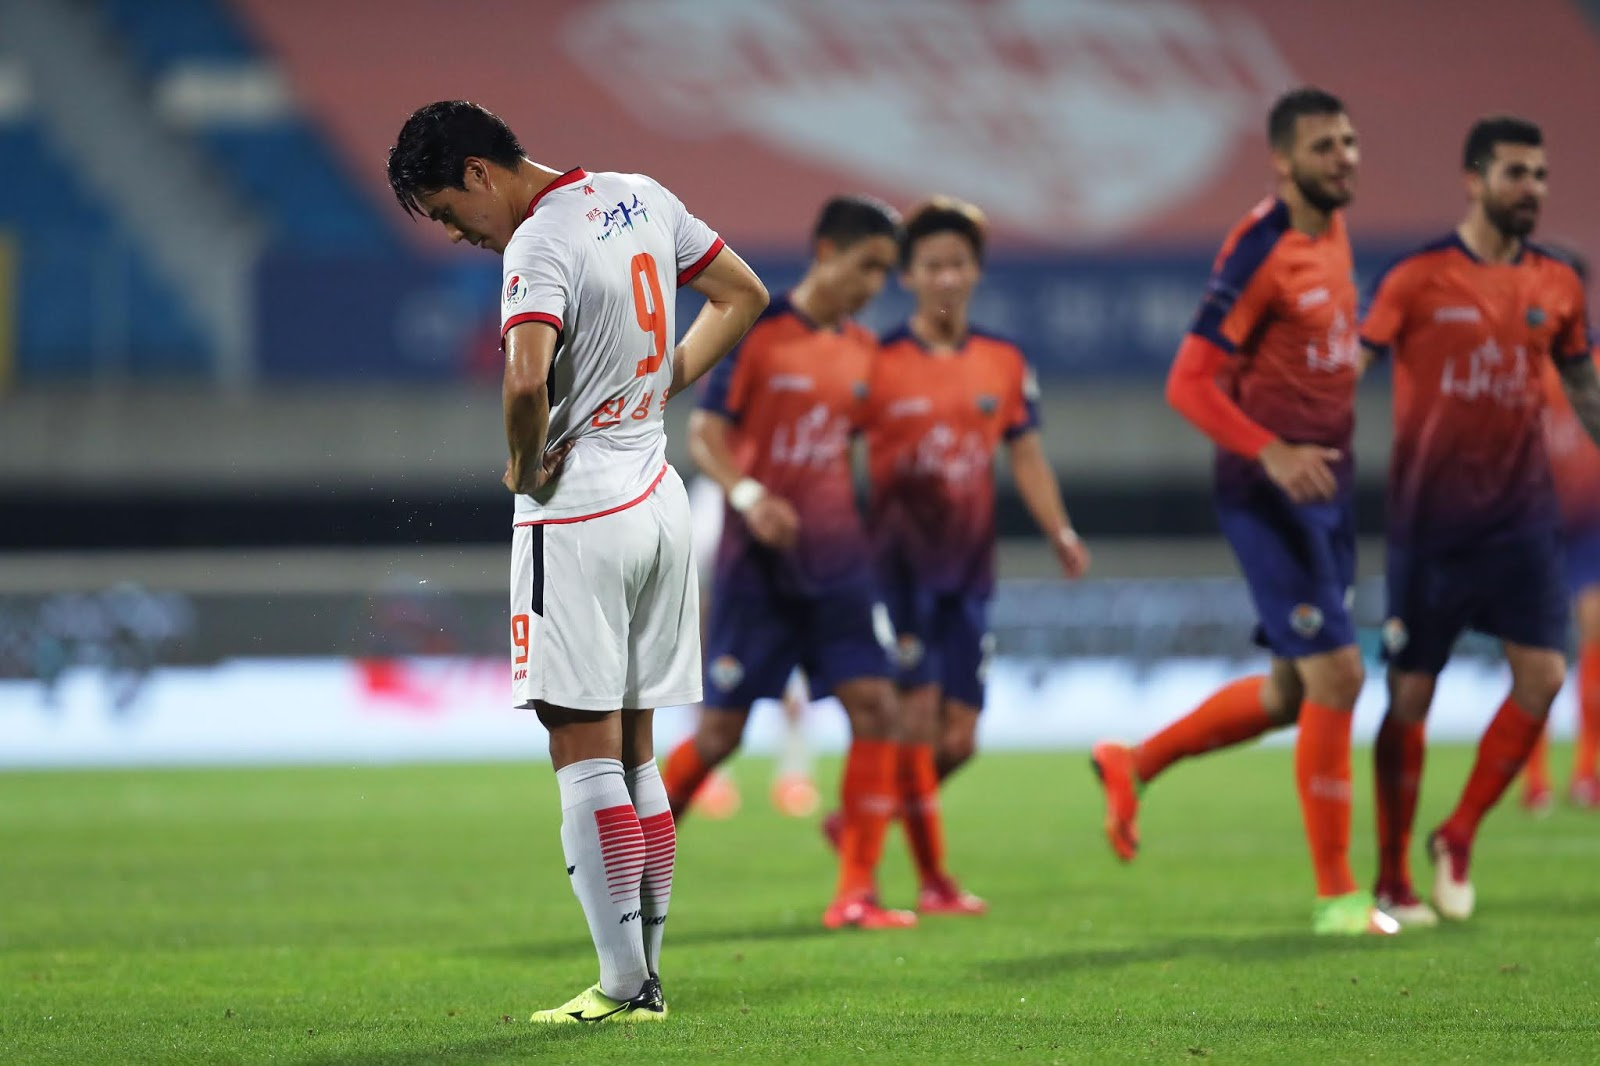 K League 1 Preview: Jeju United vs Ulsan Hyundai